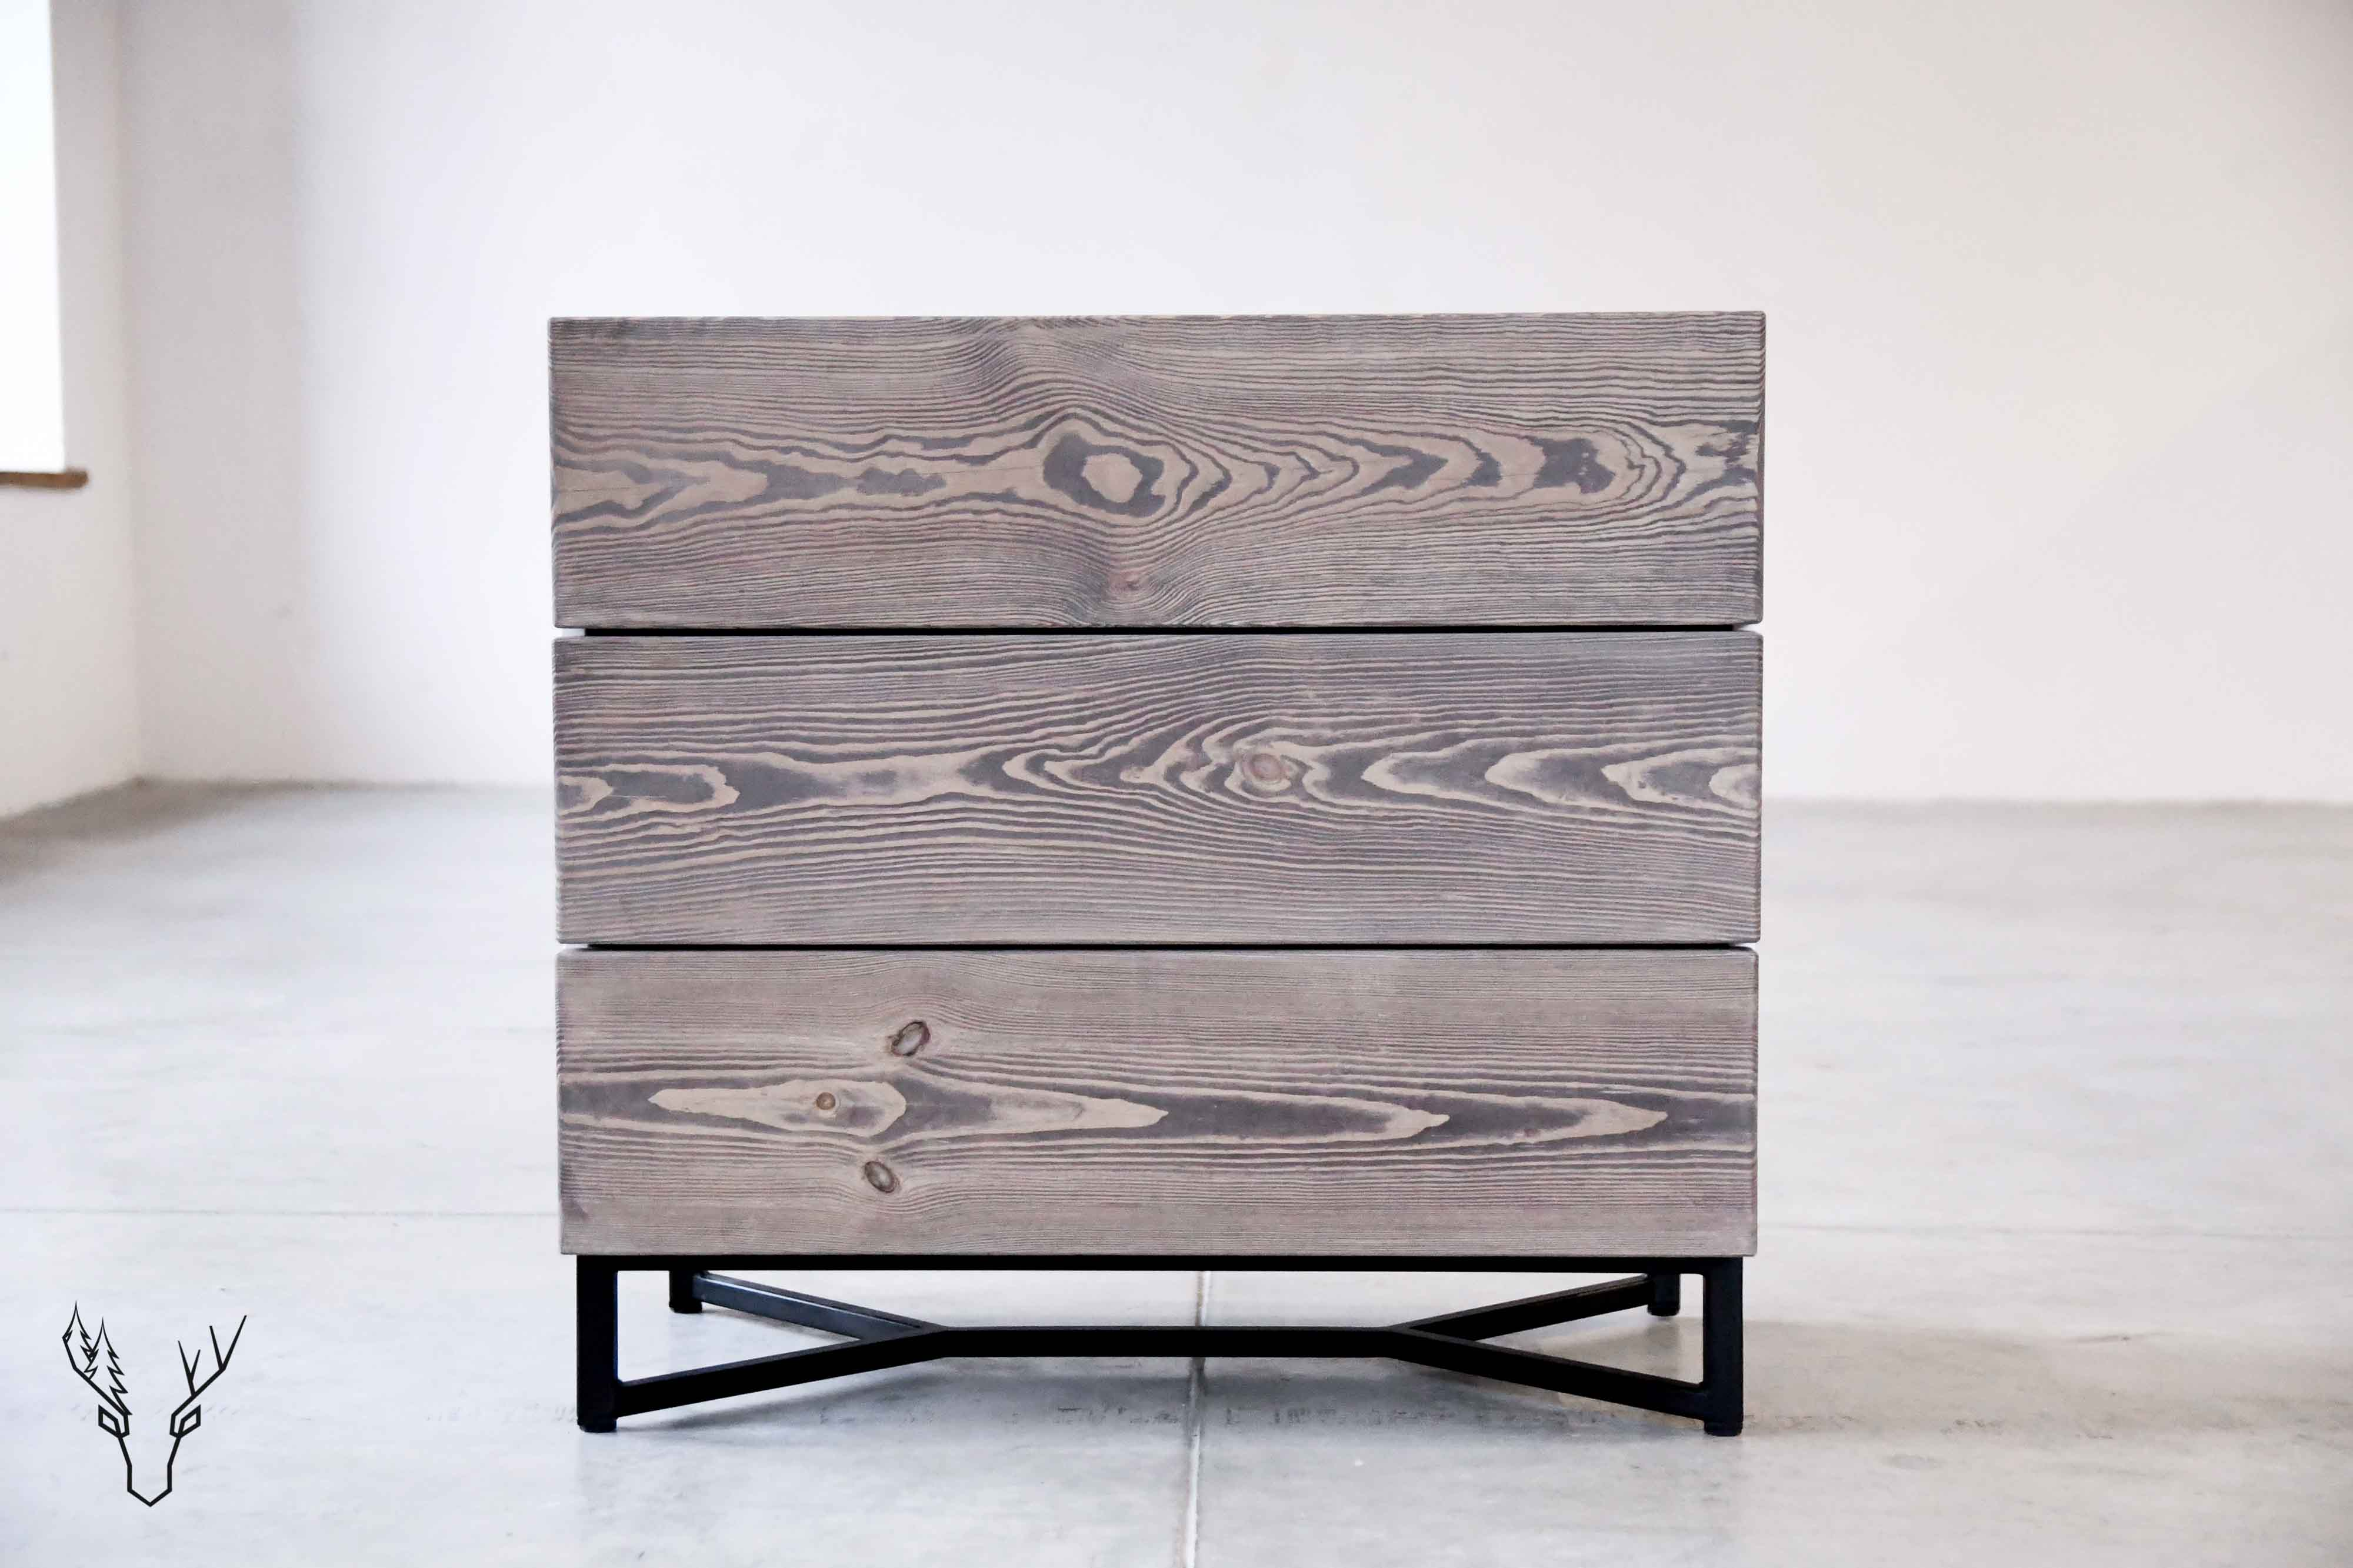 Sideboard 3 № One - Wild Wood Factory